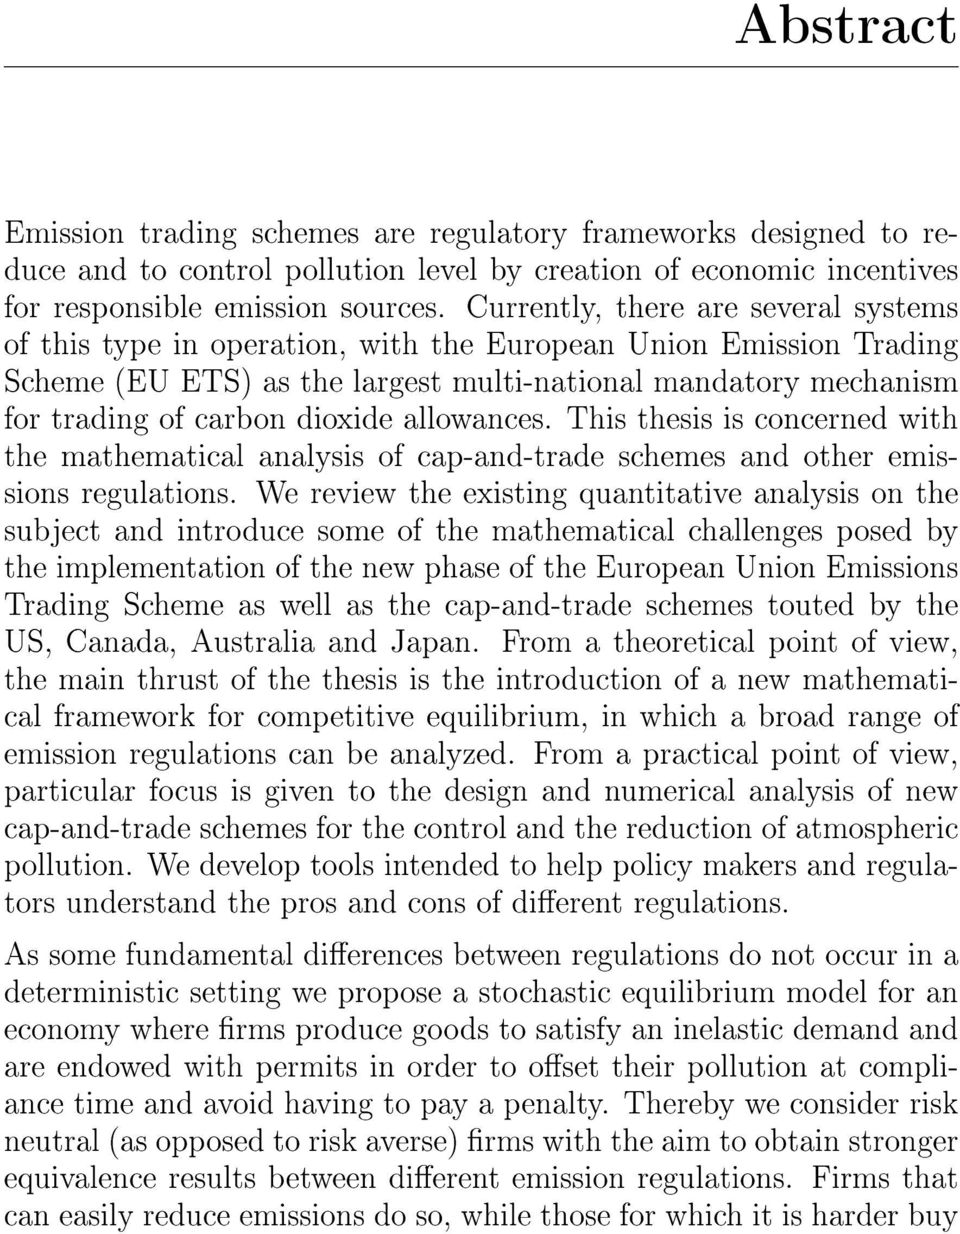 dioxide allowances. This thesis is concerned with the mathematical analysis of cap-and-trade schemes and other emissions regulations.